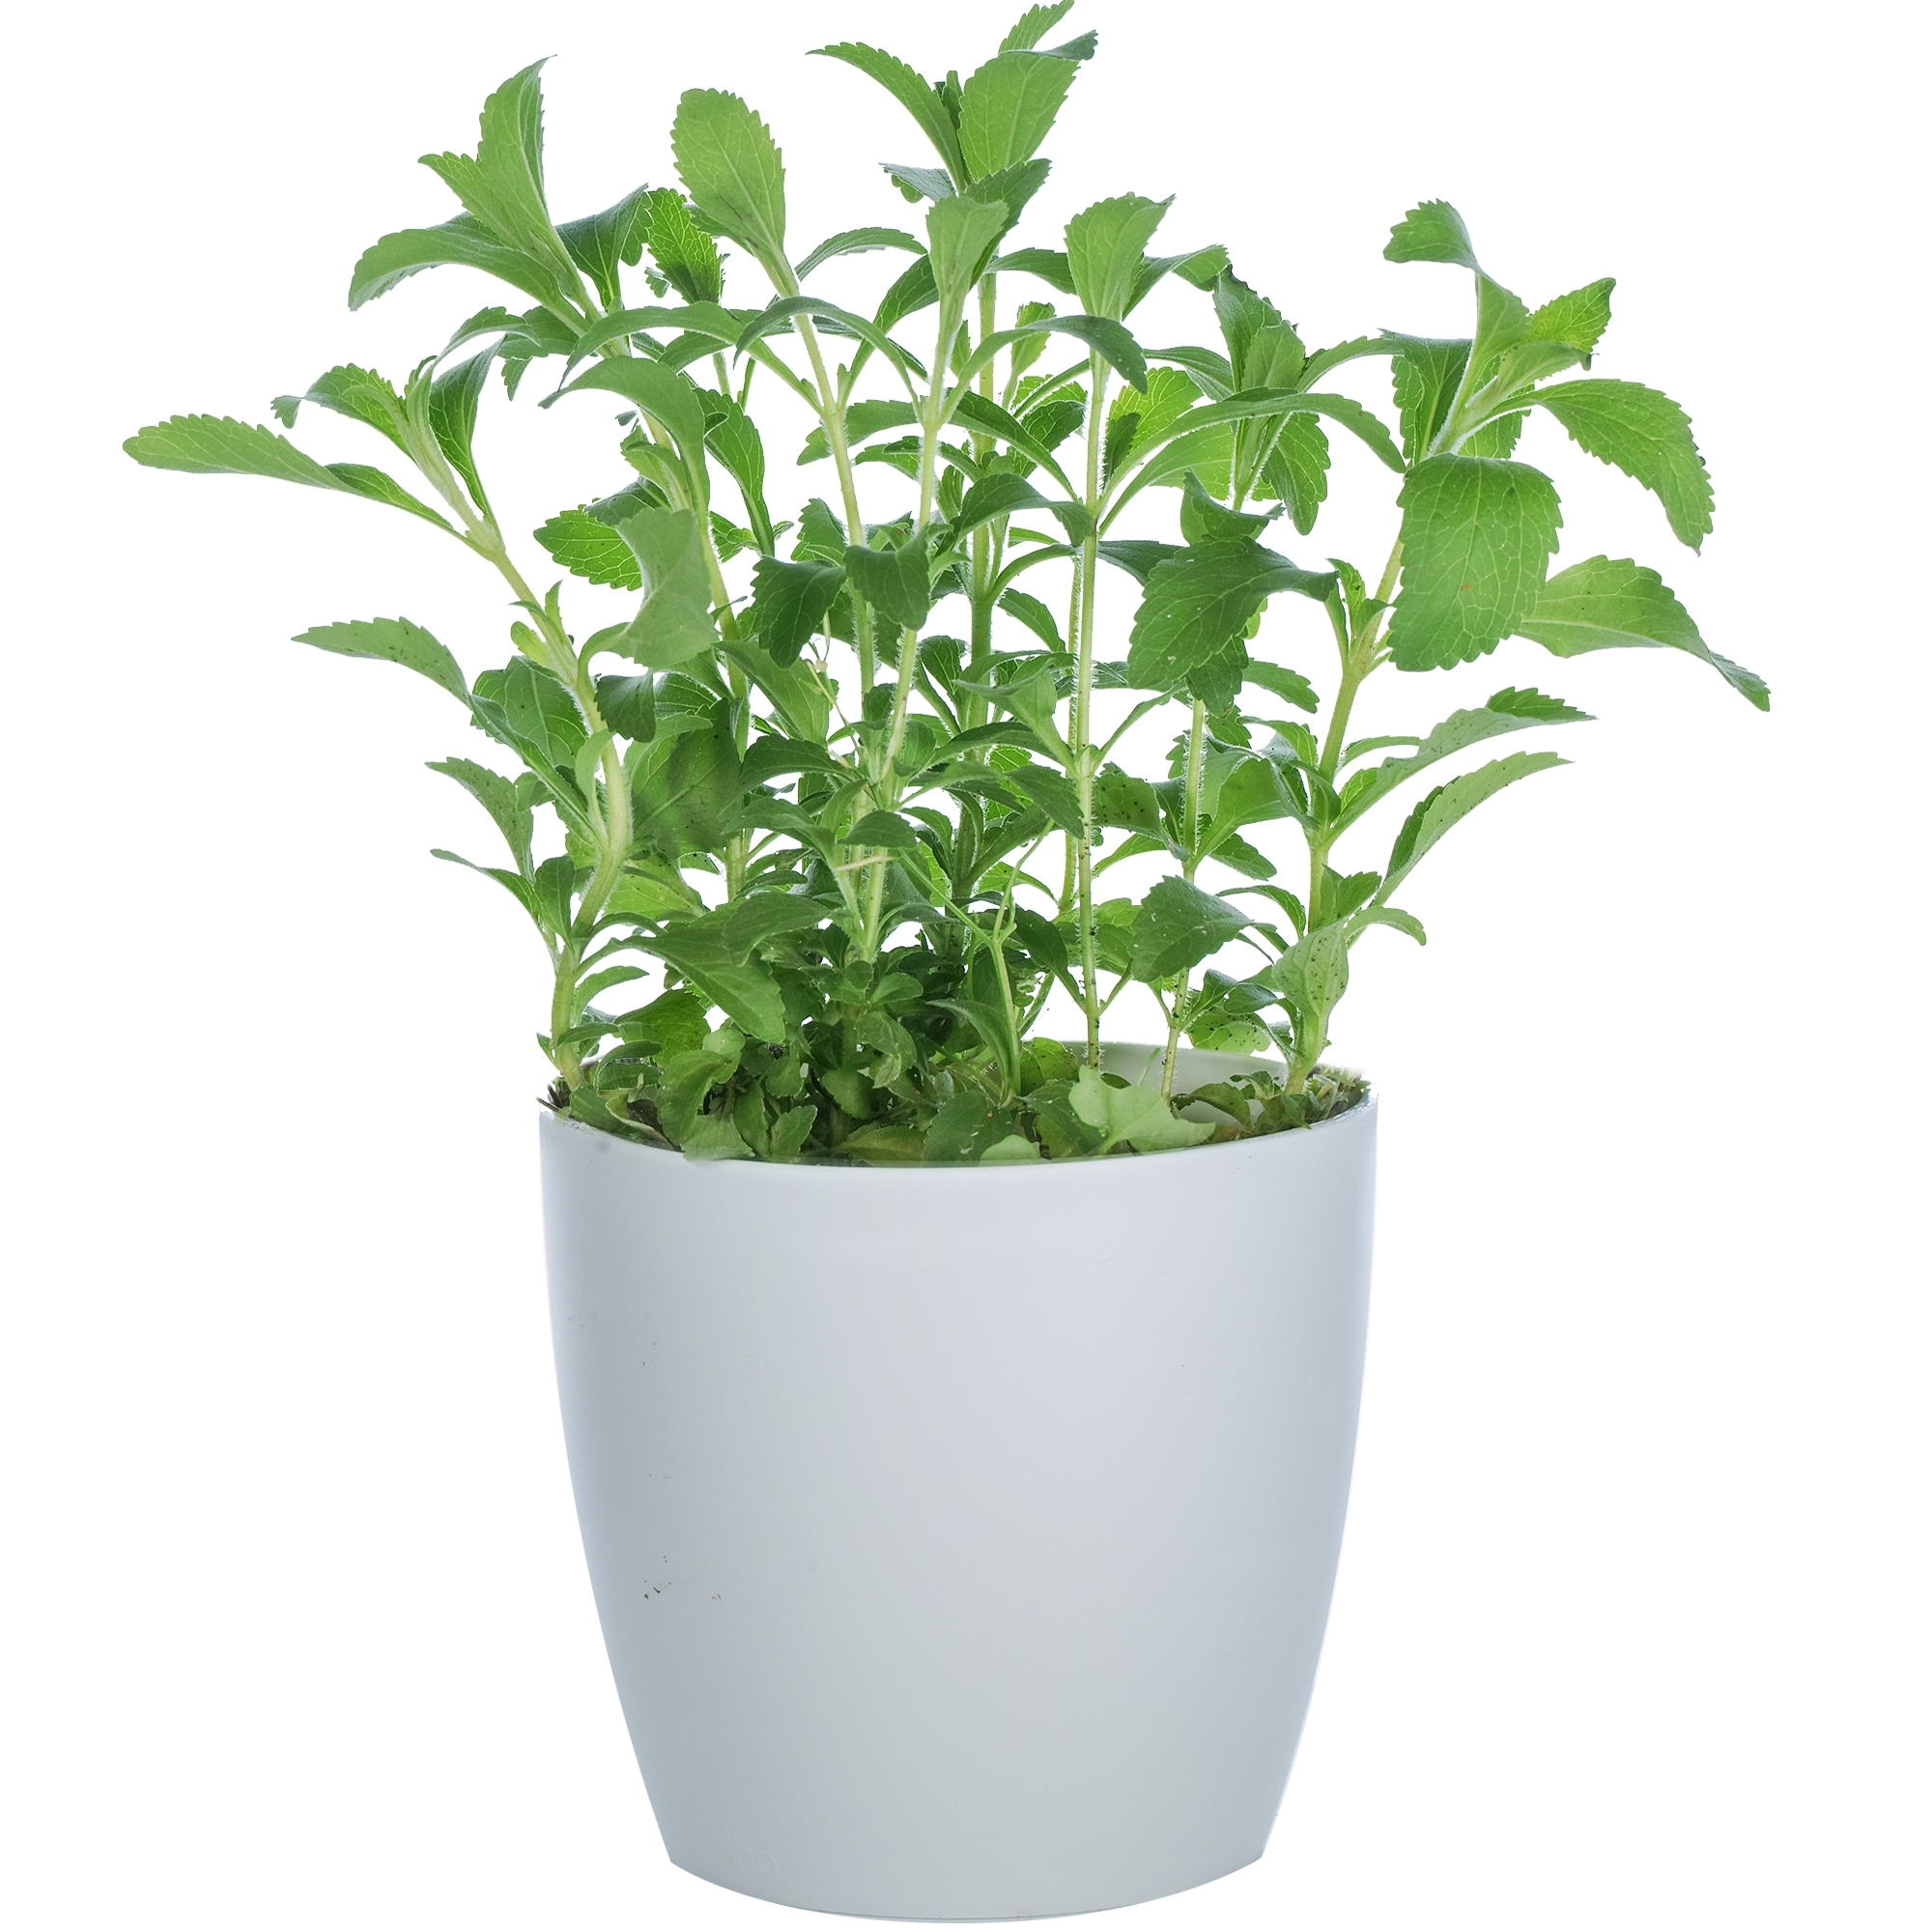 Stevia Live Plant 10 to 11 inches Tall 3½ inch Square Pot Sweet Herb